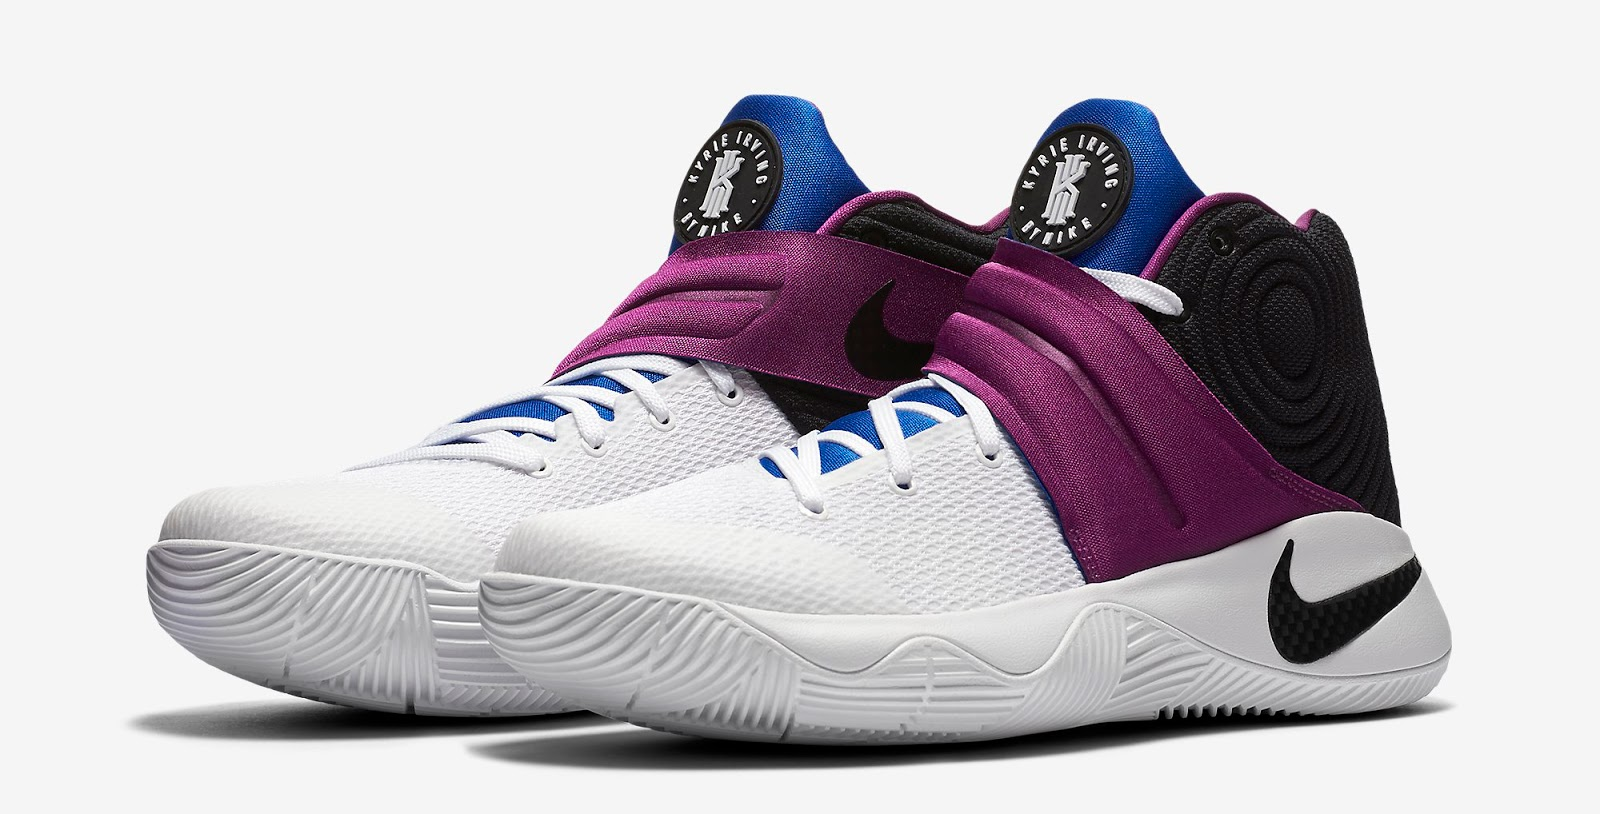 new arrival f2e57 cc8a9 Inspired by the classic Nike Air Flight Huarache, this Nike Kyrie 2 is  known as the